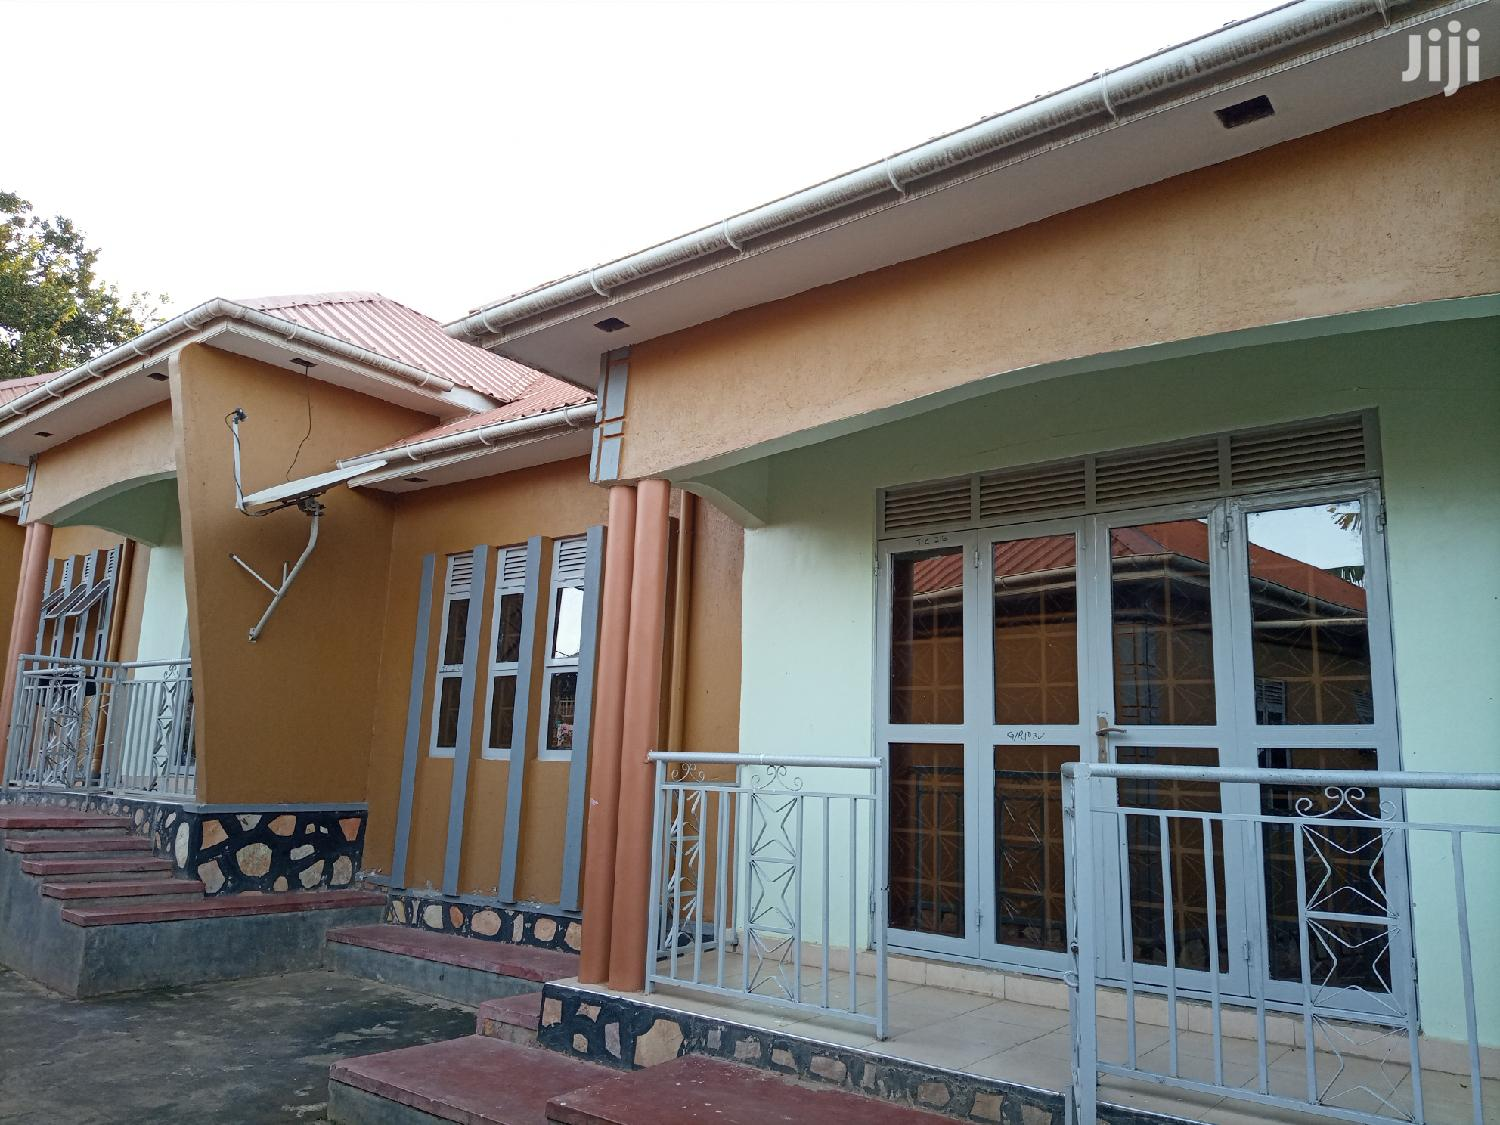 2 Bedrooms House In Ttula Kawempe For Rent | Houses & Apartments For Rent for sale in Kampala, Central Region, Uganda